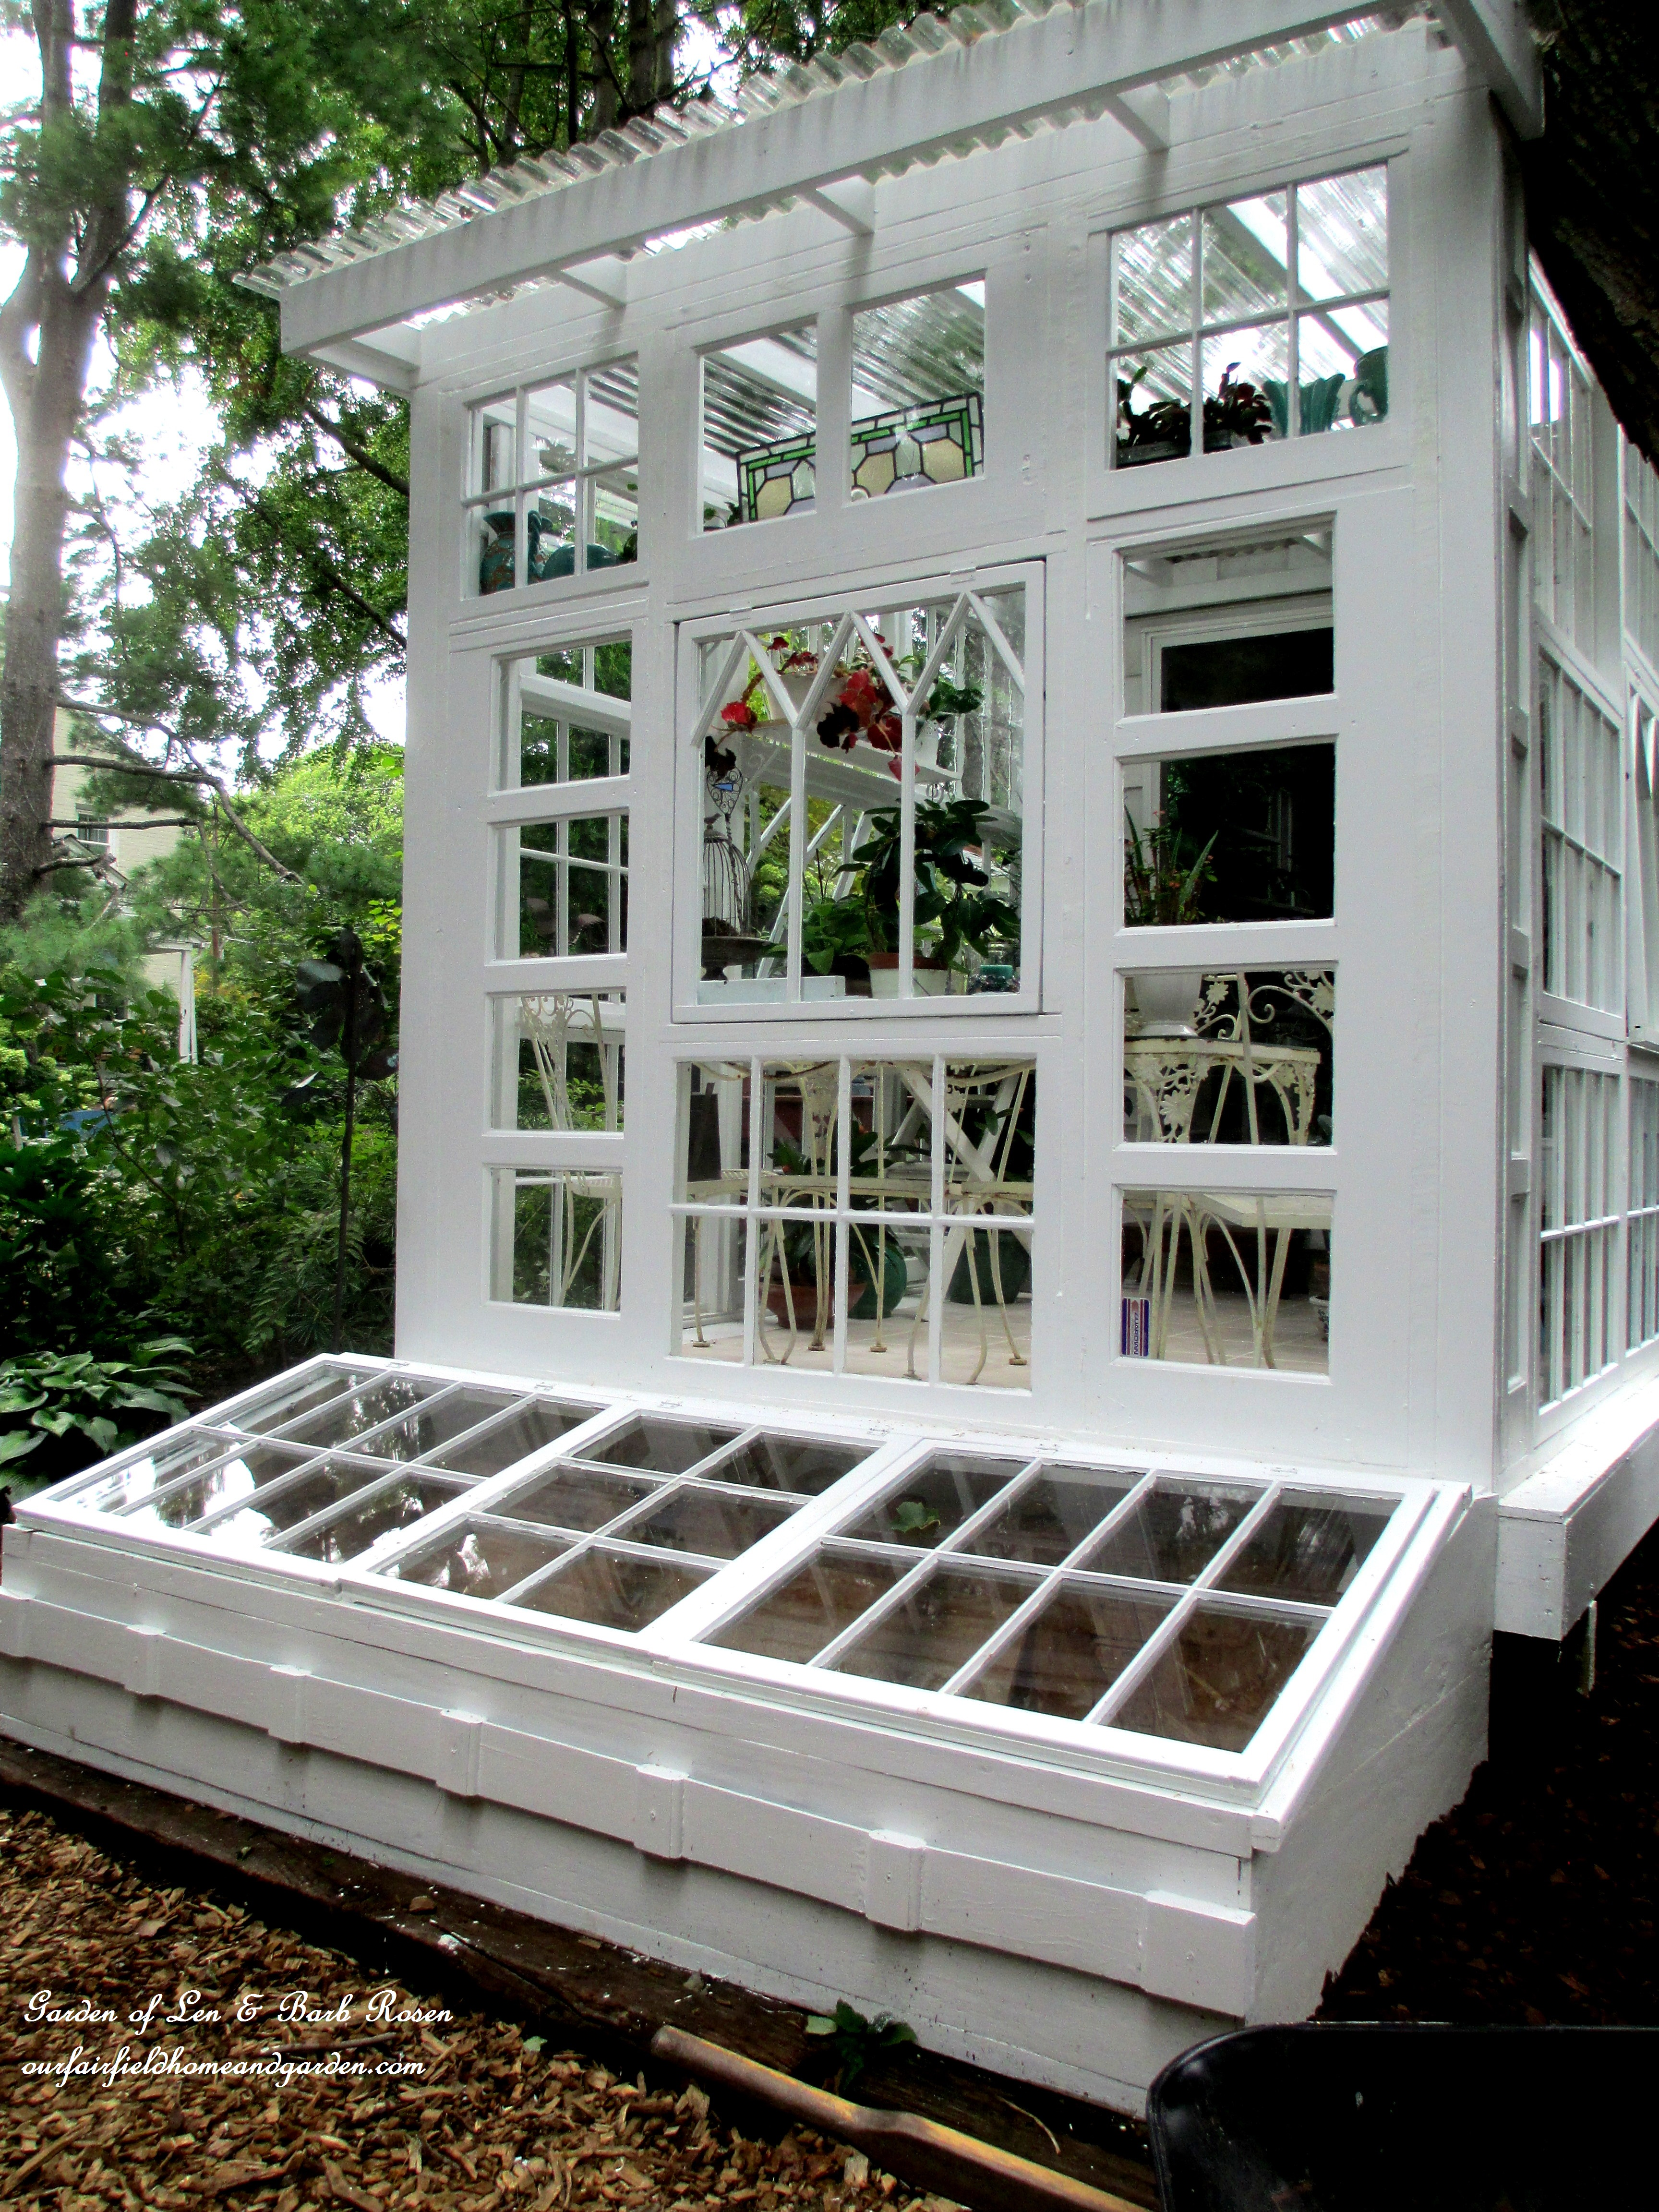 Diy Garden Window Plans Building A Repurposed Windows Greenhouse Our Fairfield